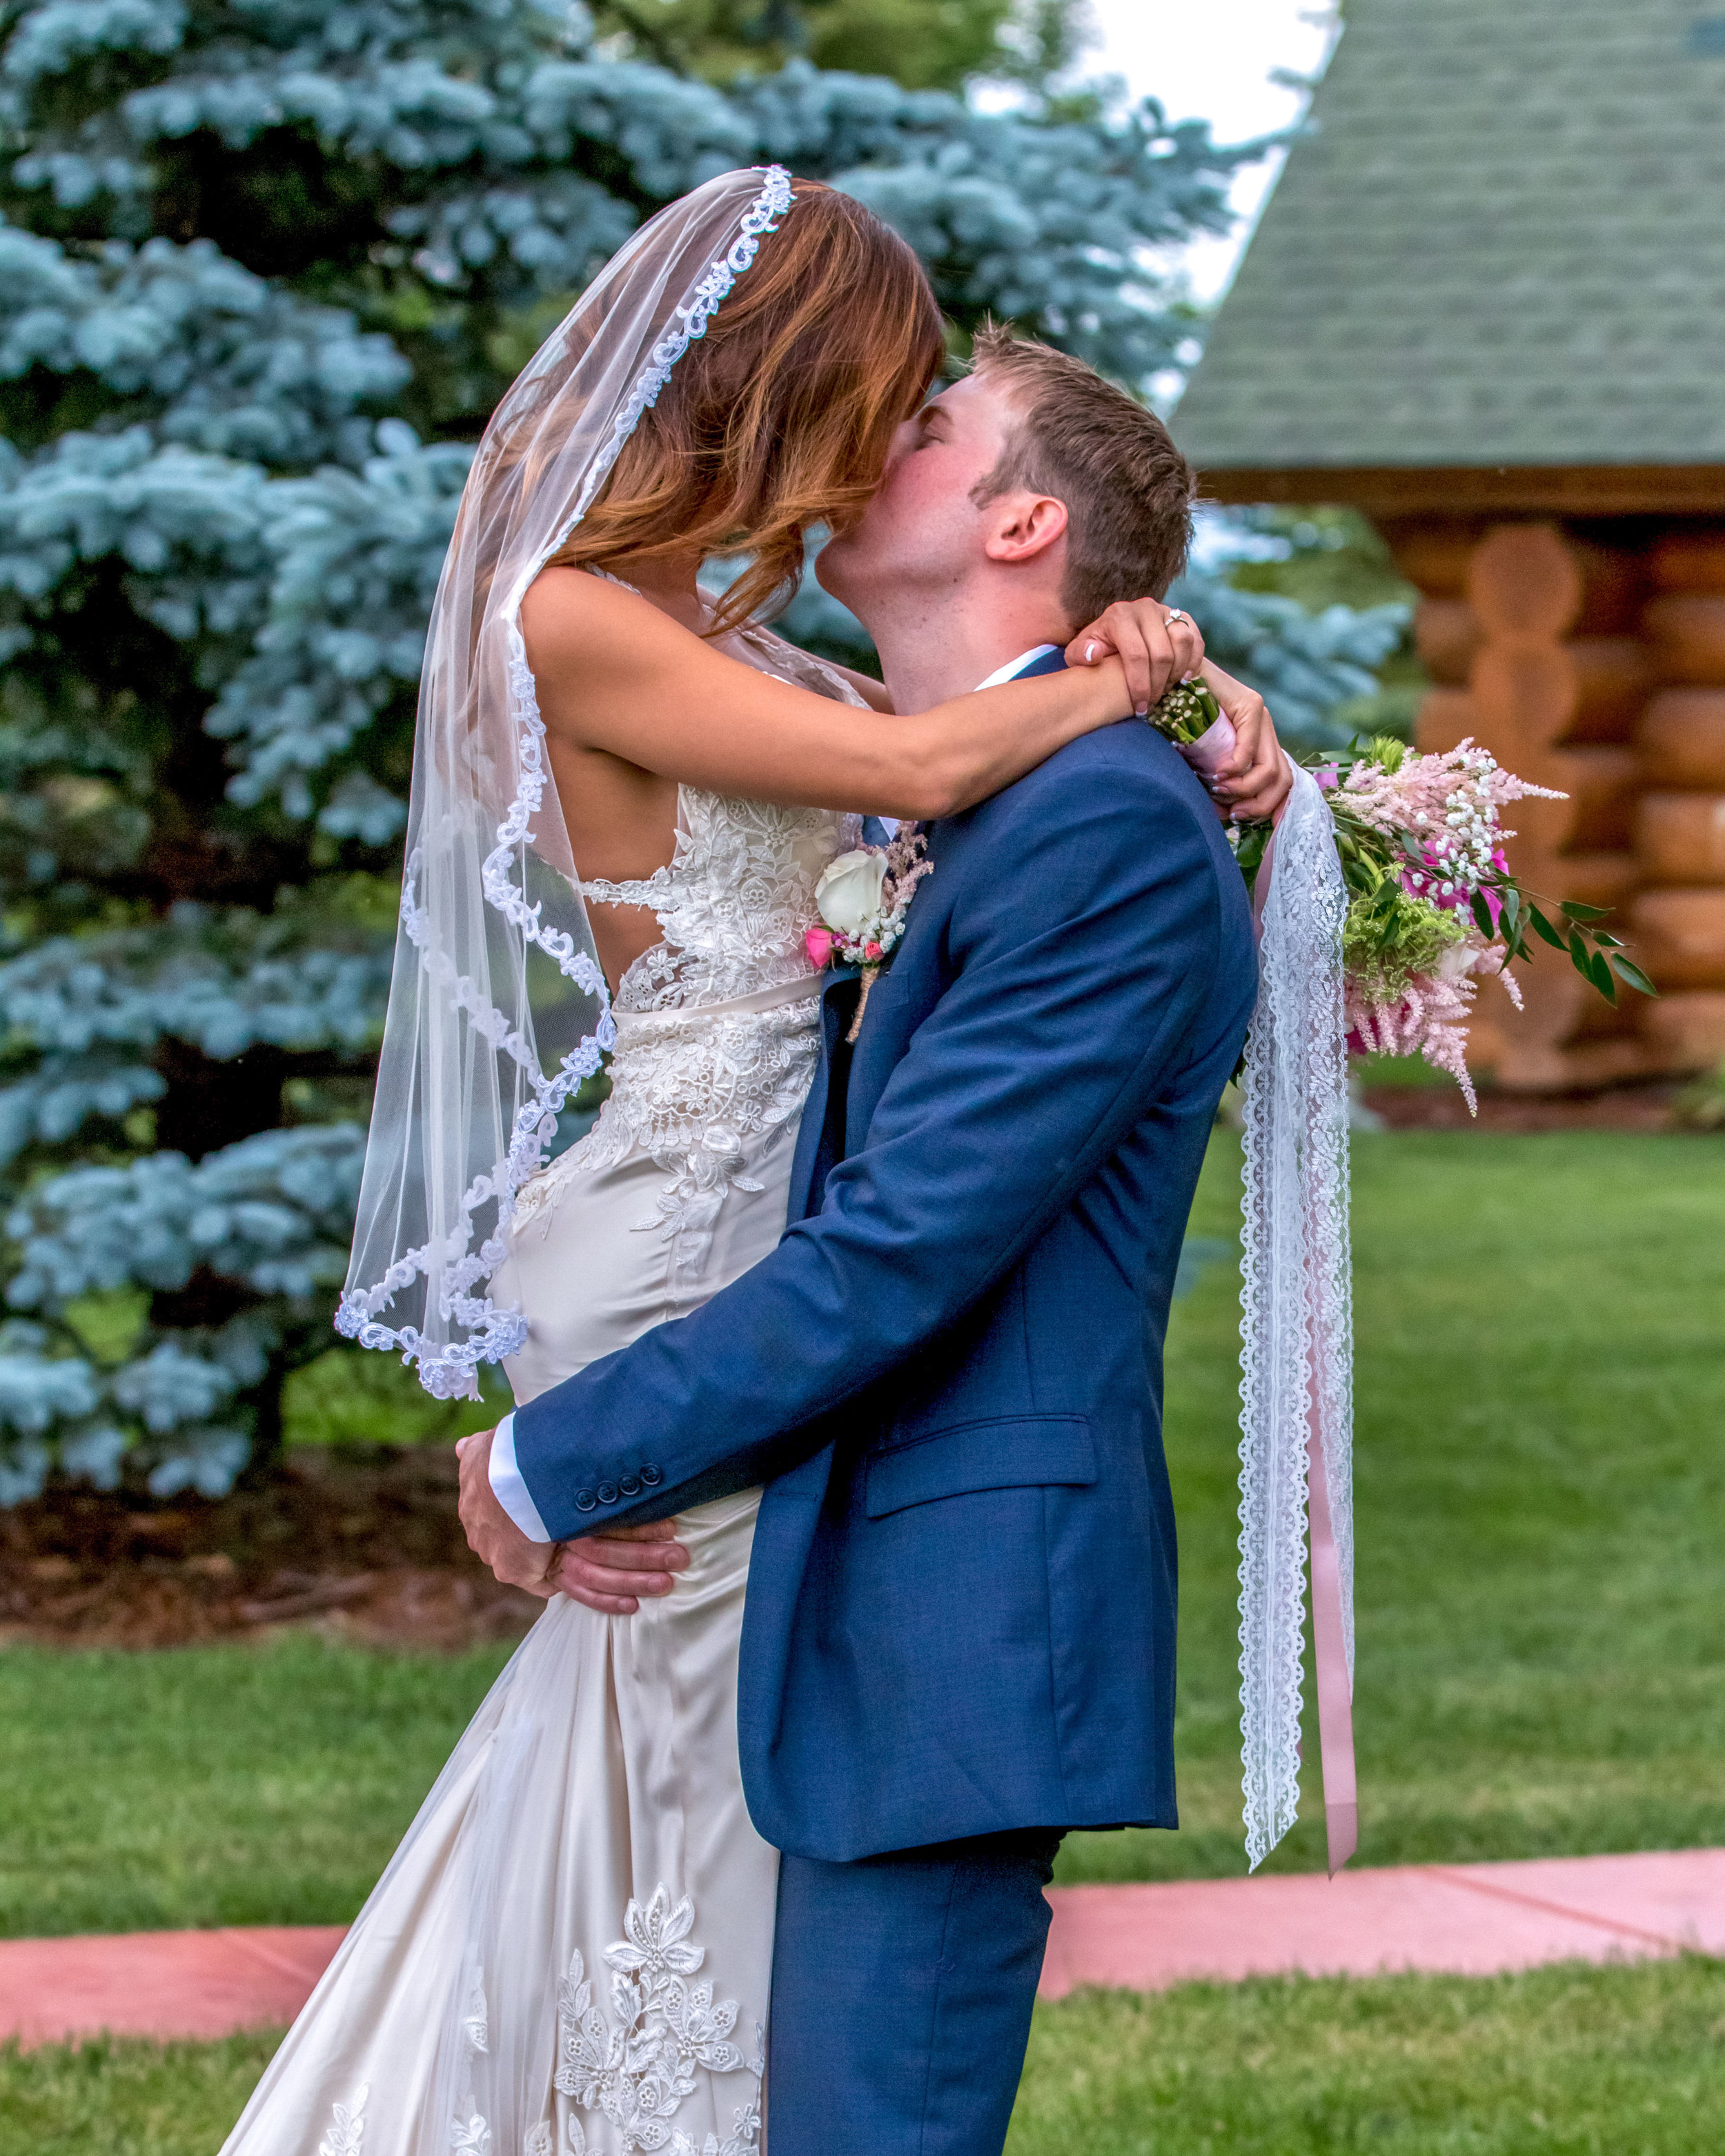 Minnesota Wedding at Glenhaven, outdoor ceremony, Fab Weddings, groom picking up bride